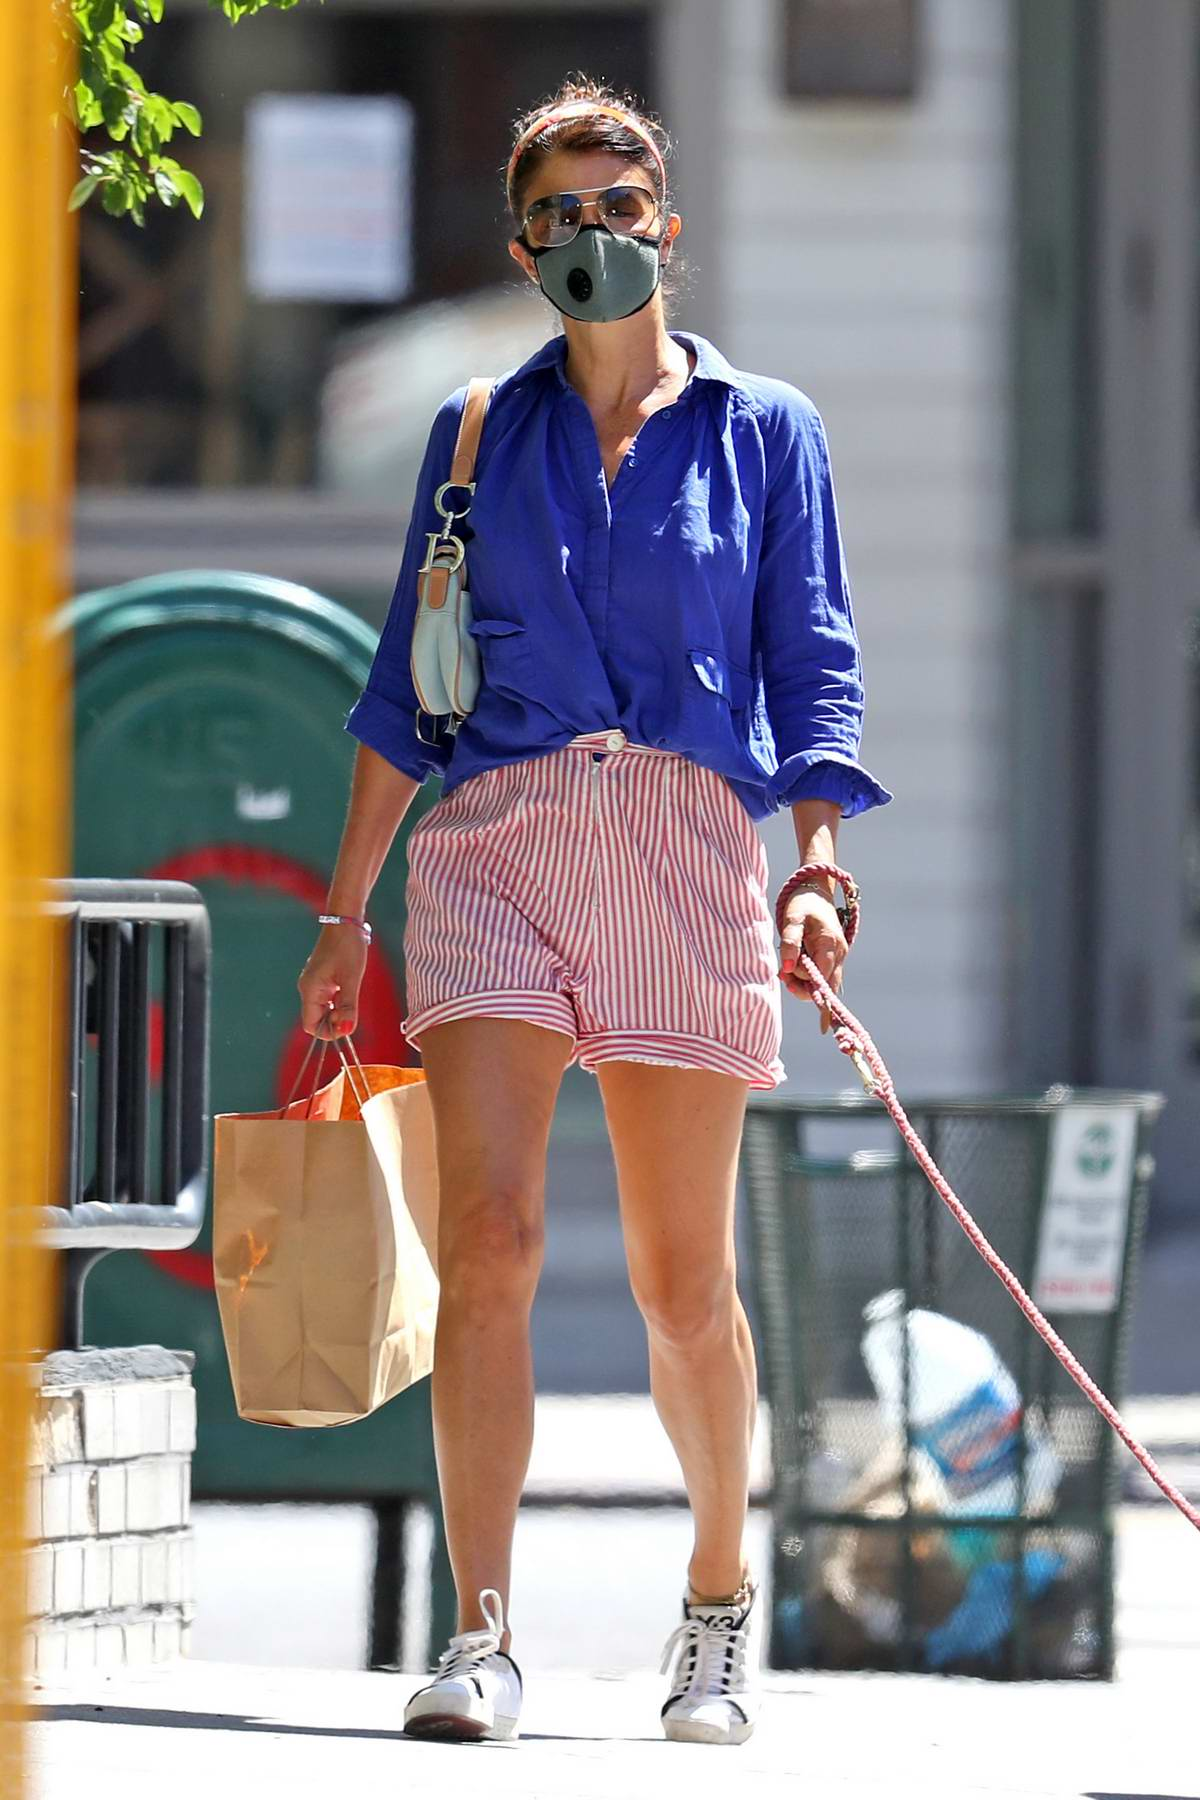 Helena Christensen looks stylish in navy blue shirt and striped pink shorts while out shopping with her dog in New York City